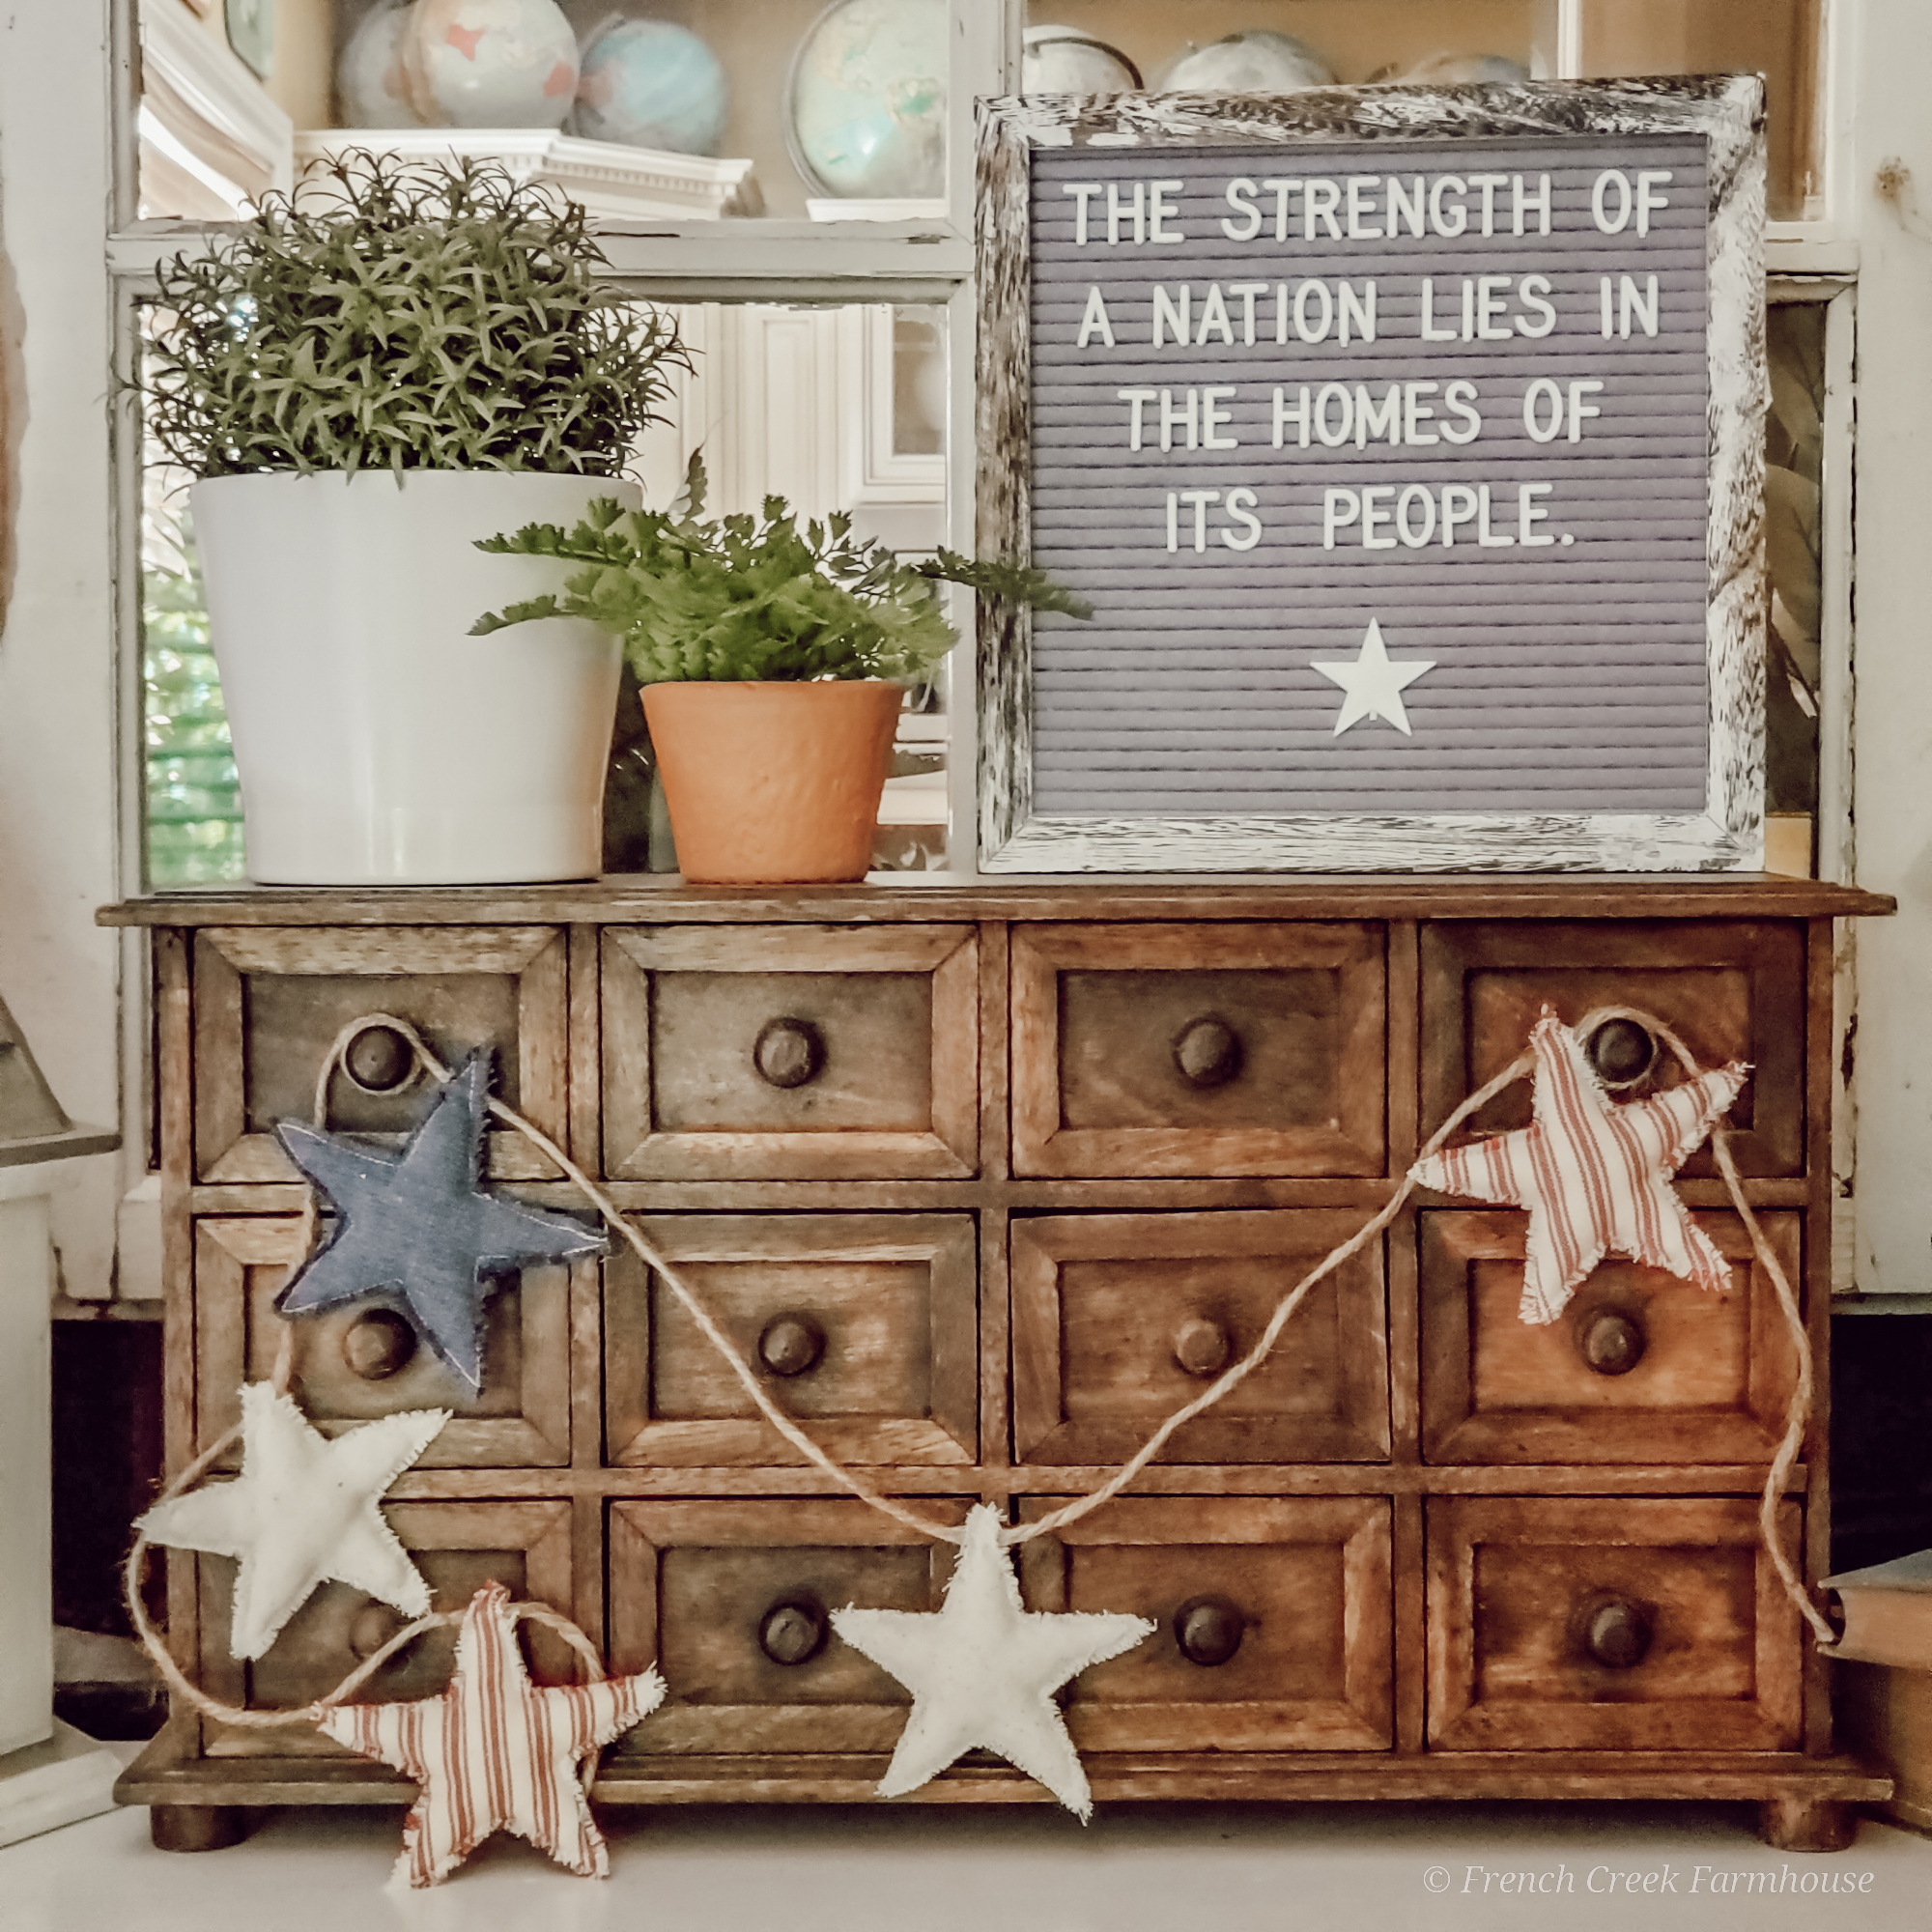 This garland looks great in your patriotic farmhouse vignettes!